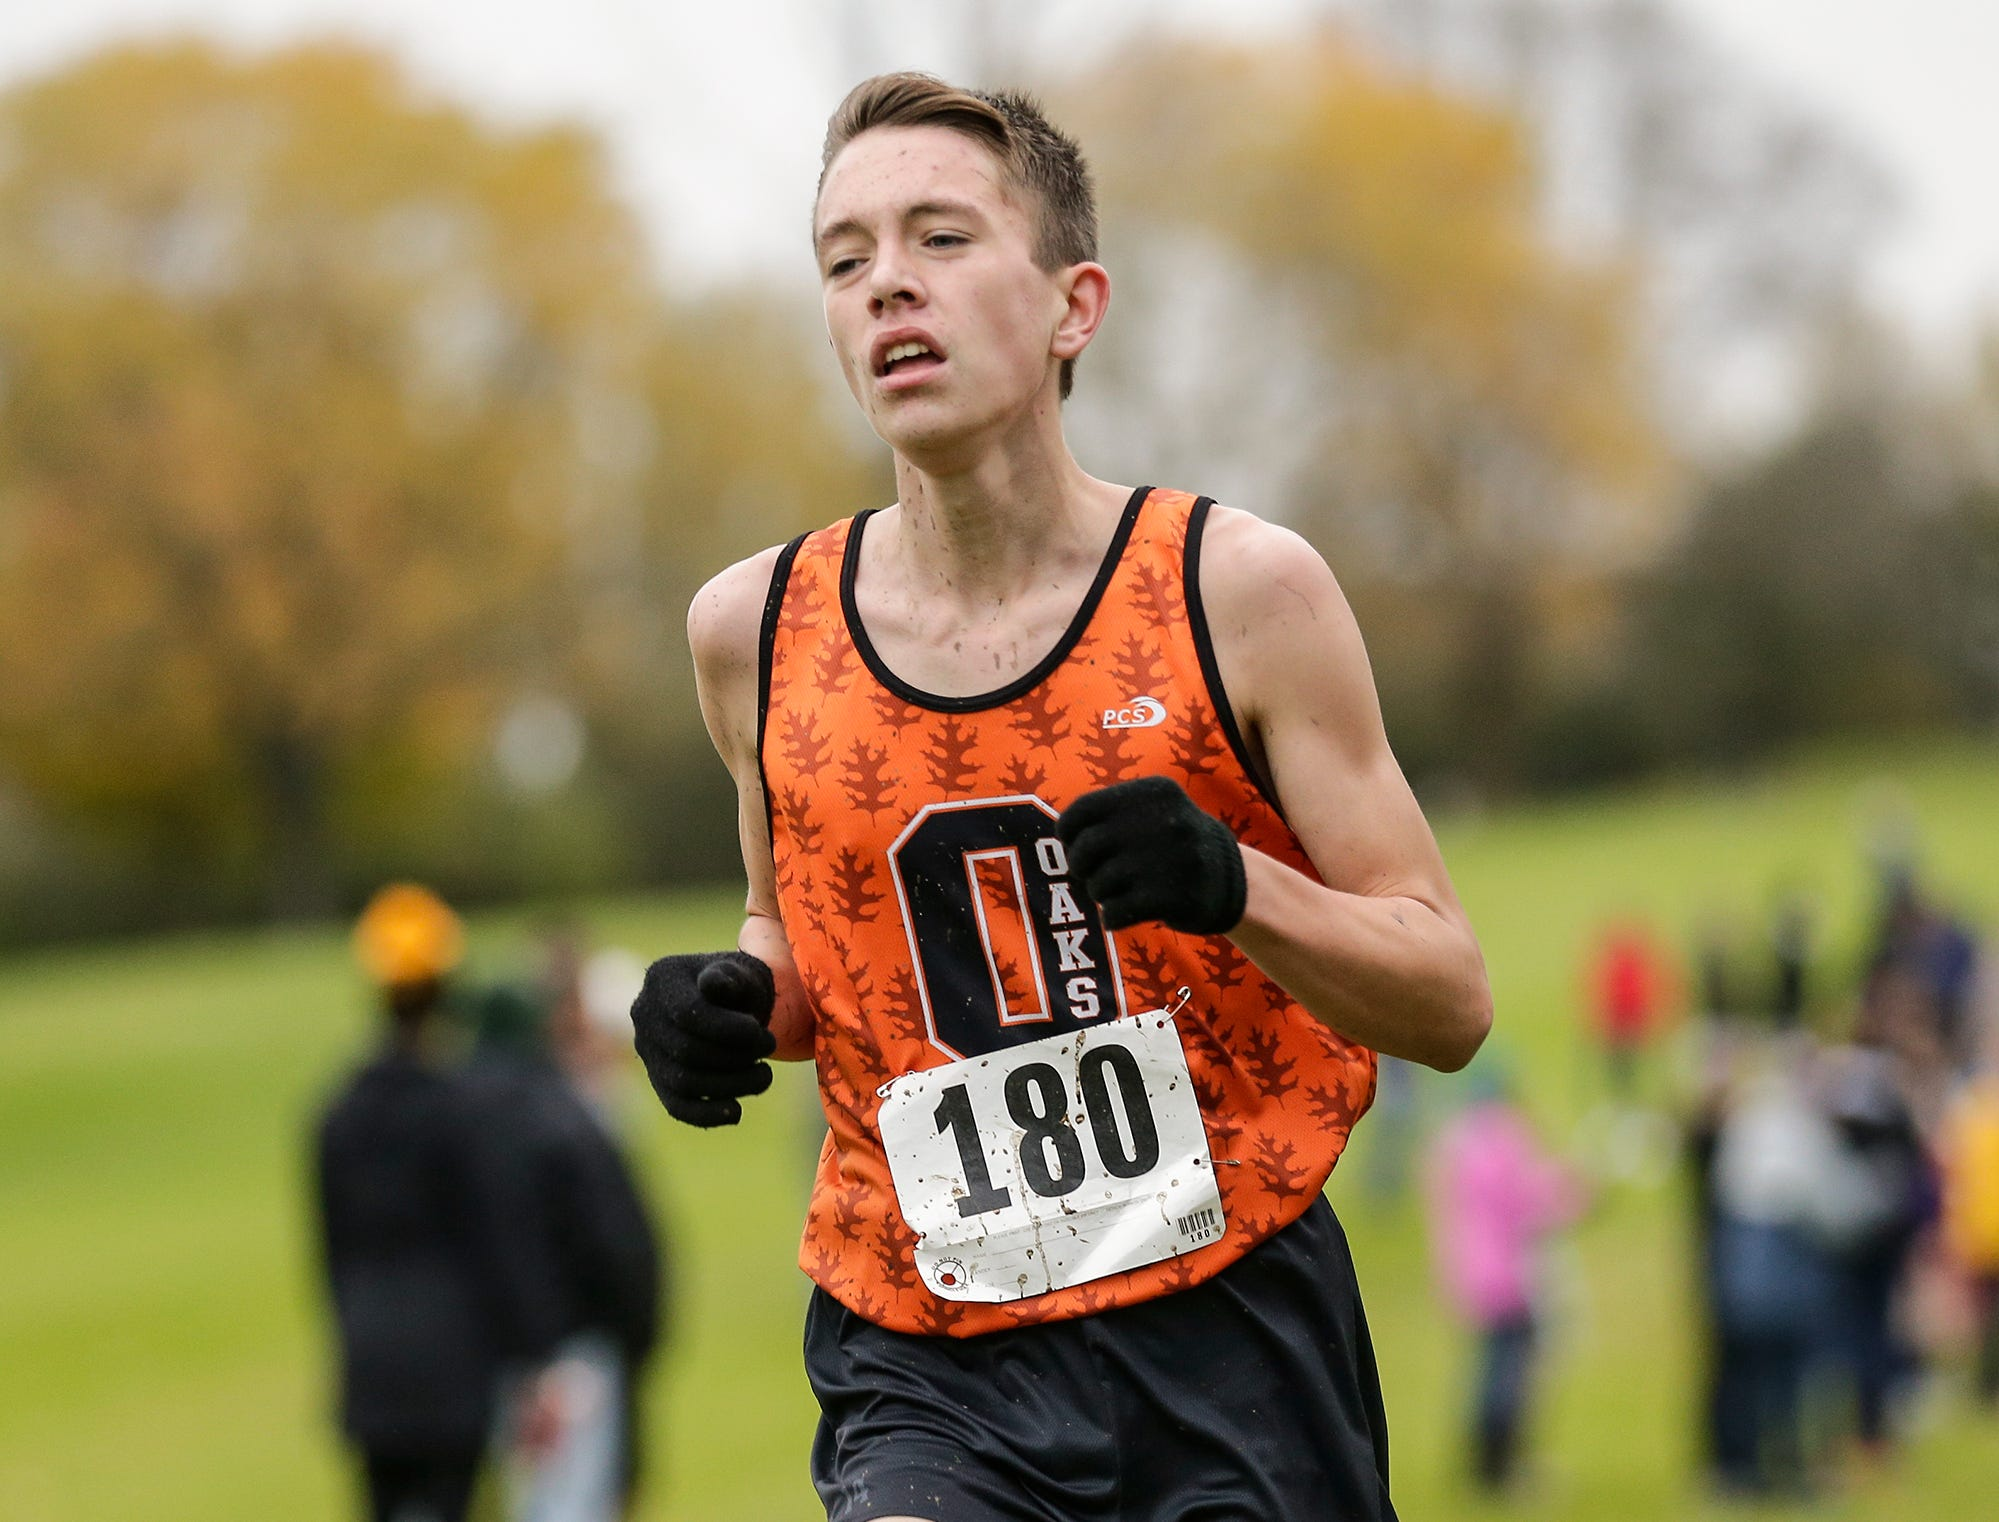 North Fond du Lac High School's Xavier Lasee runs in the WIAA Division two Mayville sectional cross country meet at the Mayville golf course Friday, October 19, 2018. Doug Raflik/USA TODAY NETWORK-Wisconsin